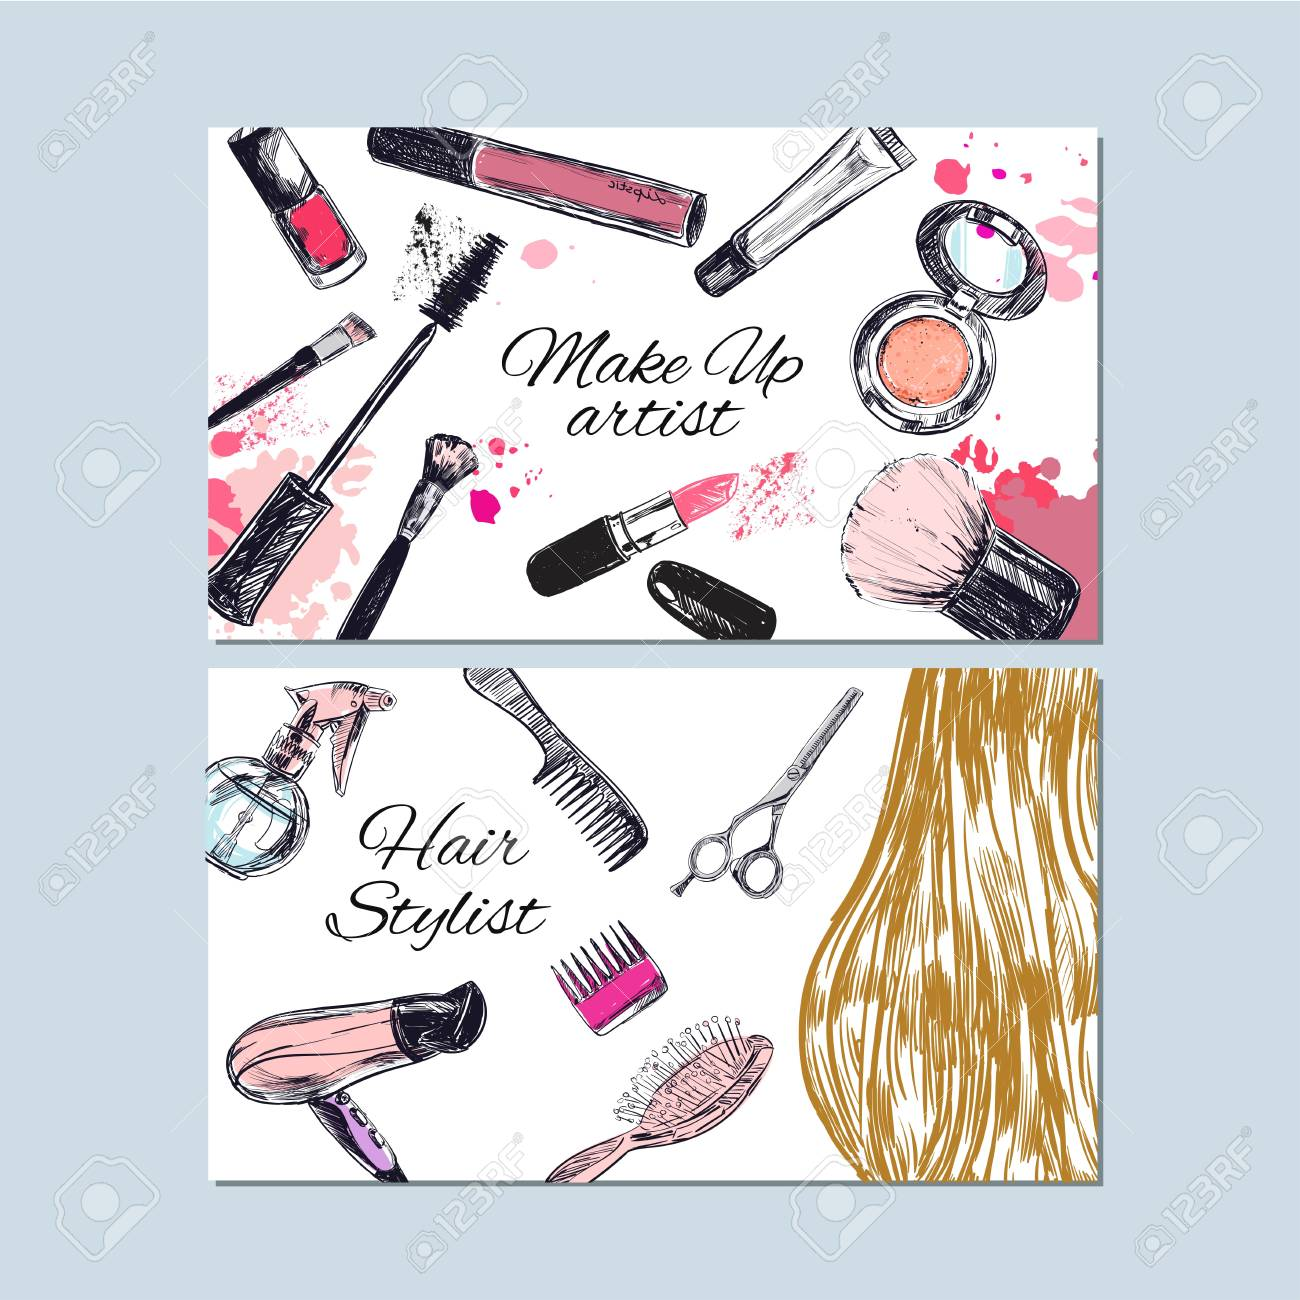 Make up artist and hair stylist business cards beauty and fashion make up artist and hair stylist business cards beauty and fashion vector hand drawn reheart Choice Image